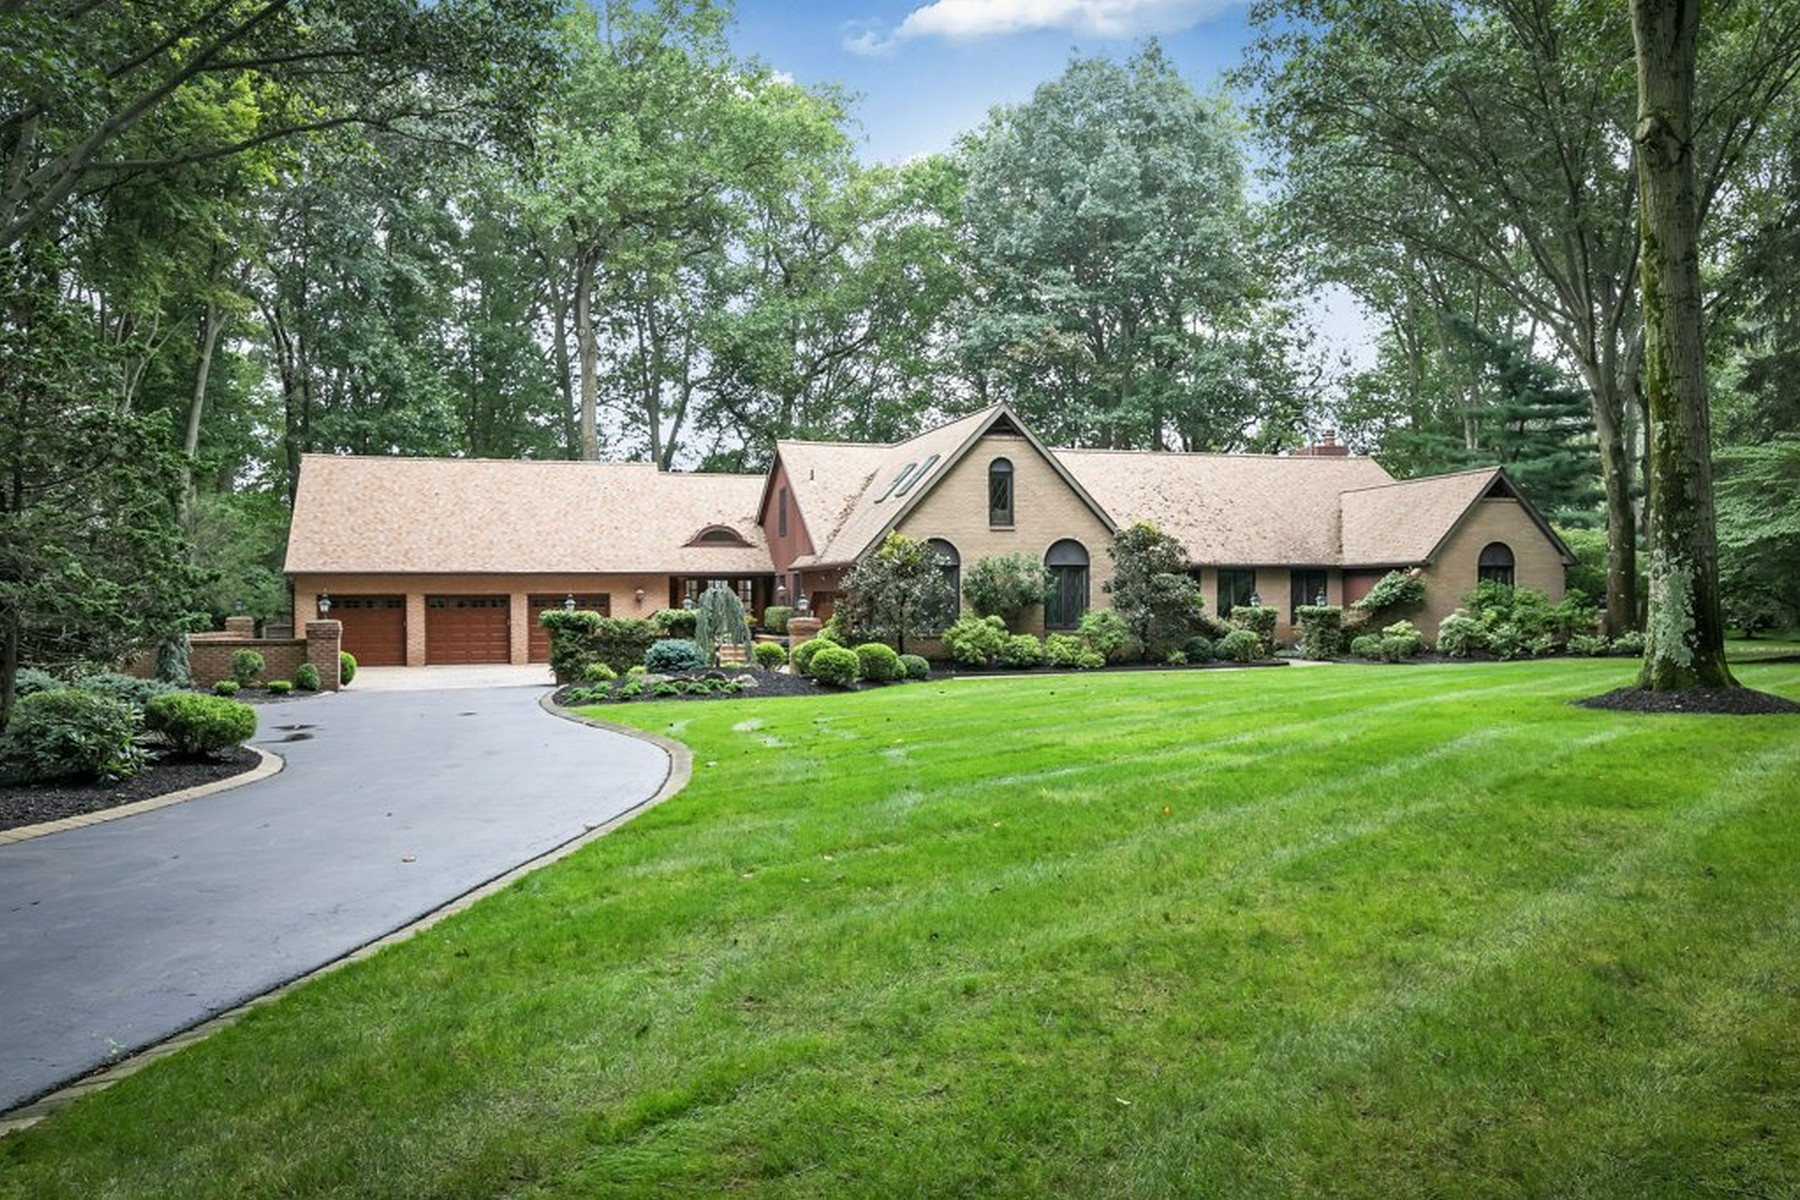 Single Family Home for Sale at Rare Waterfront In Colts Neck 7 Beaver Dam Road, Colts Neck, New Jersey 07722 United States